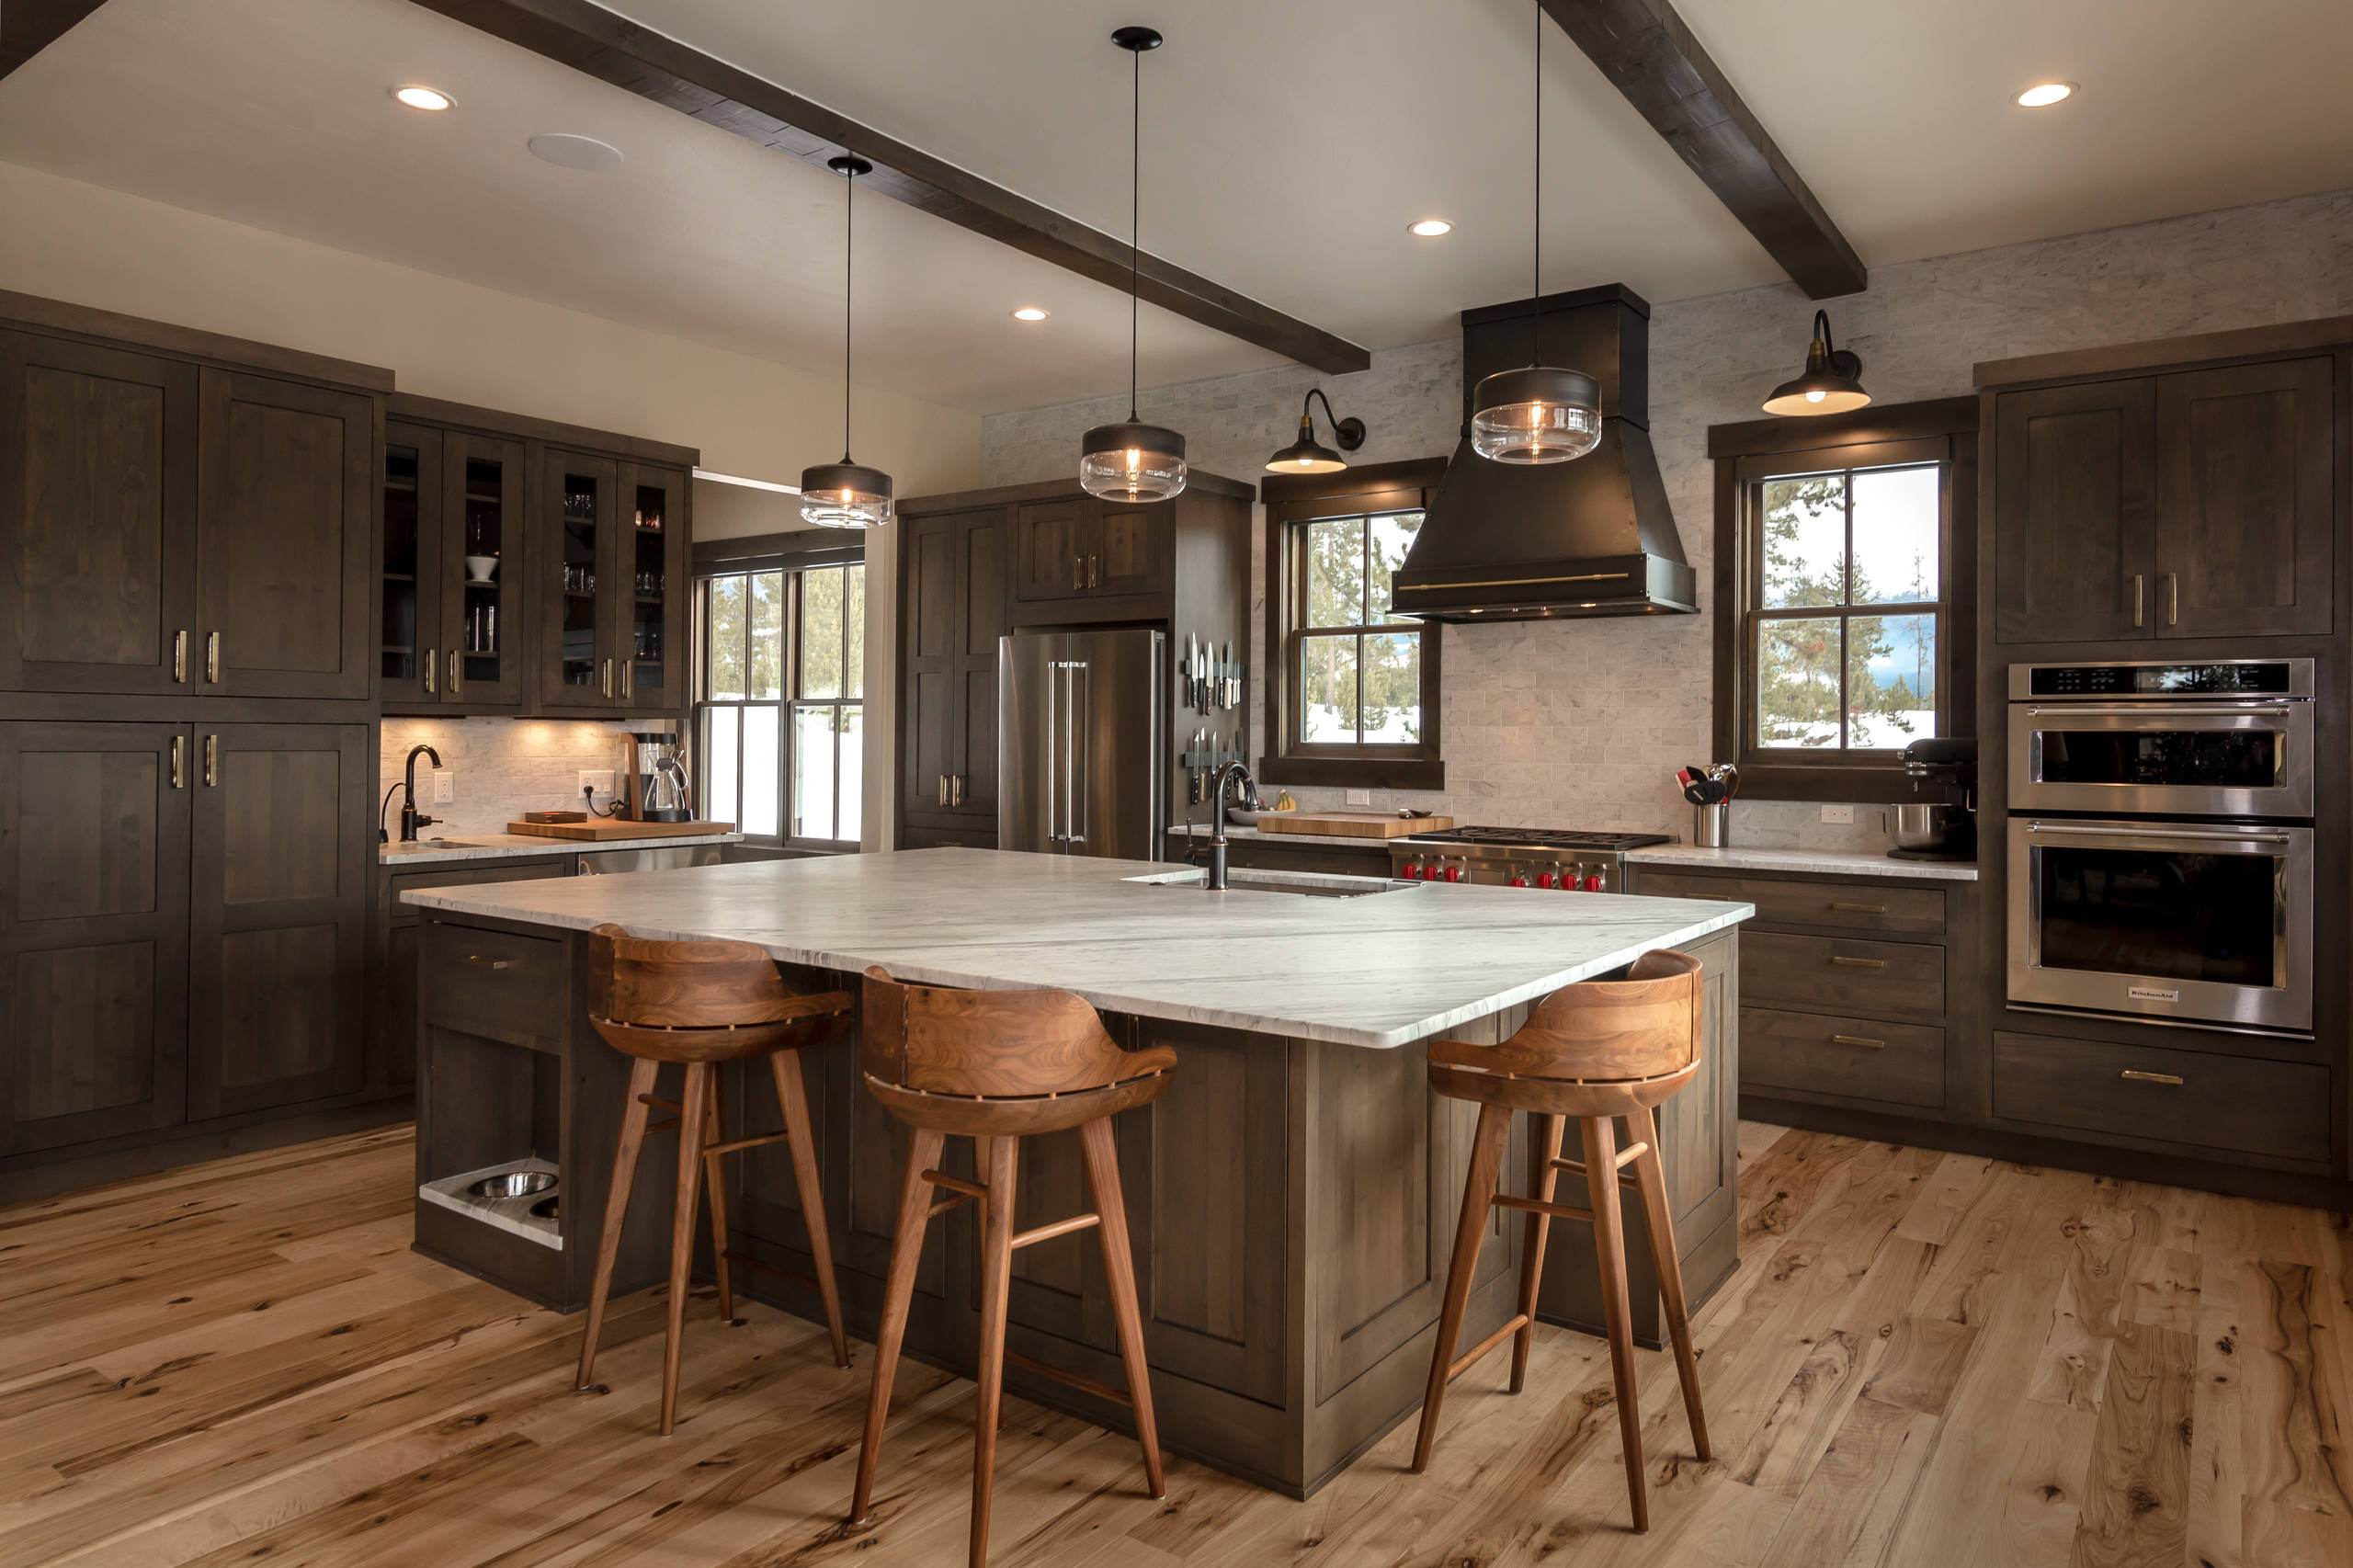 75 Beautiful Rustic L Shaped Kitchen Pictures Ideas April 2021 Houzz